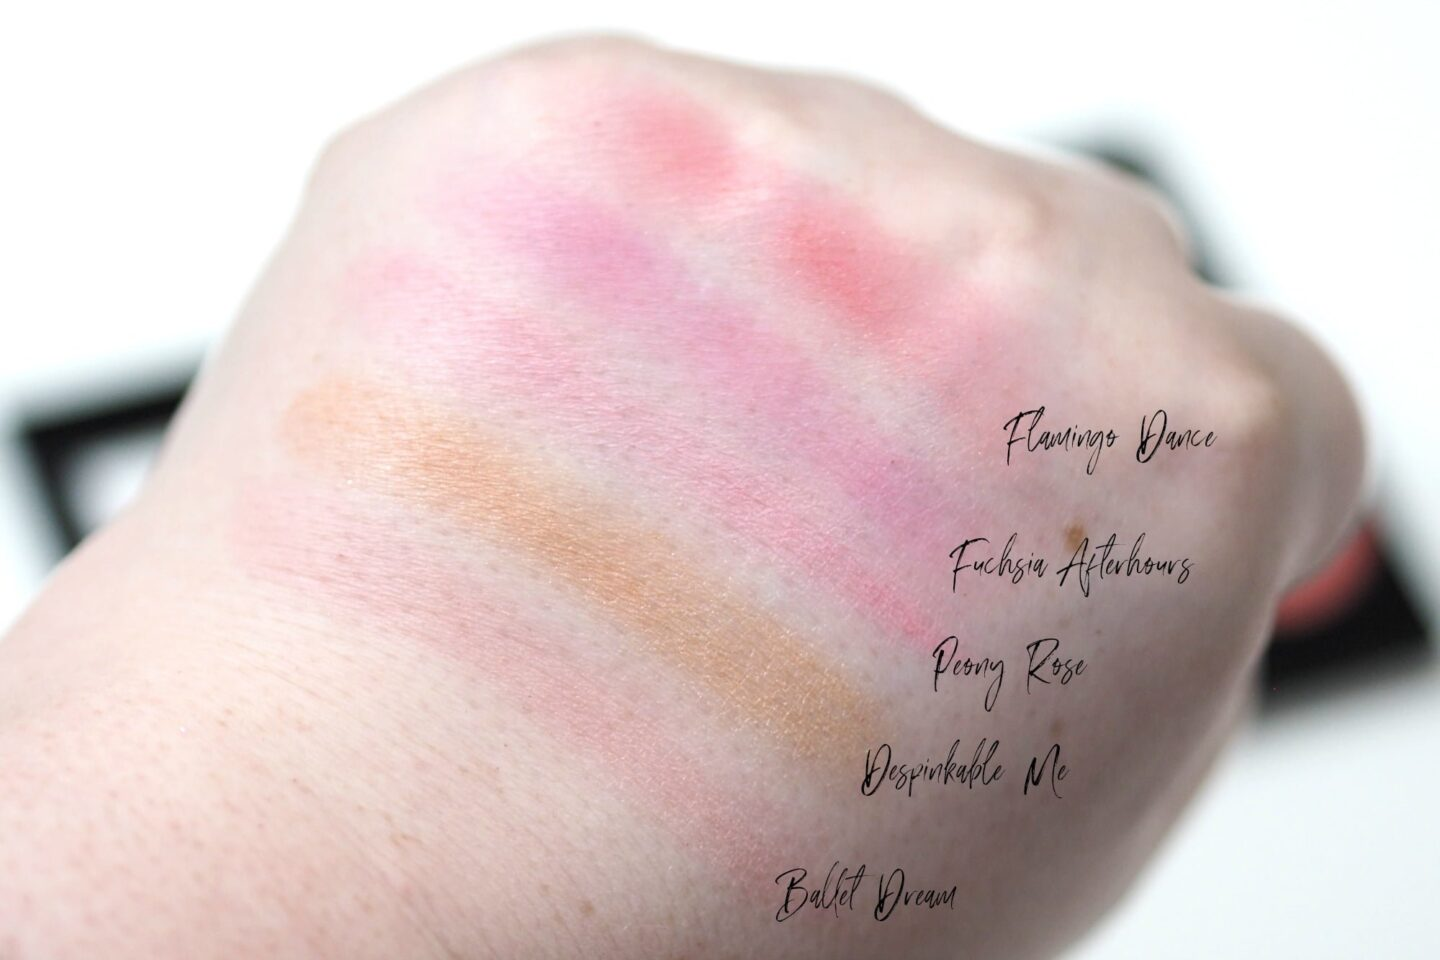 L'Oreal Infallible Paint Blush Palette Review and Swatches